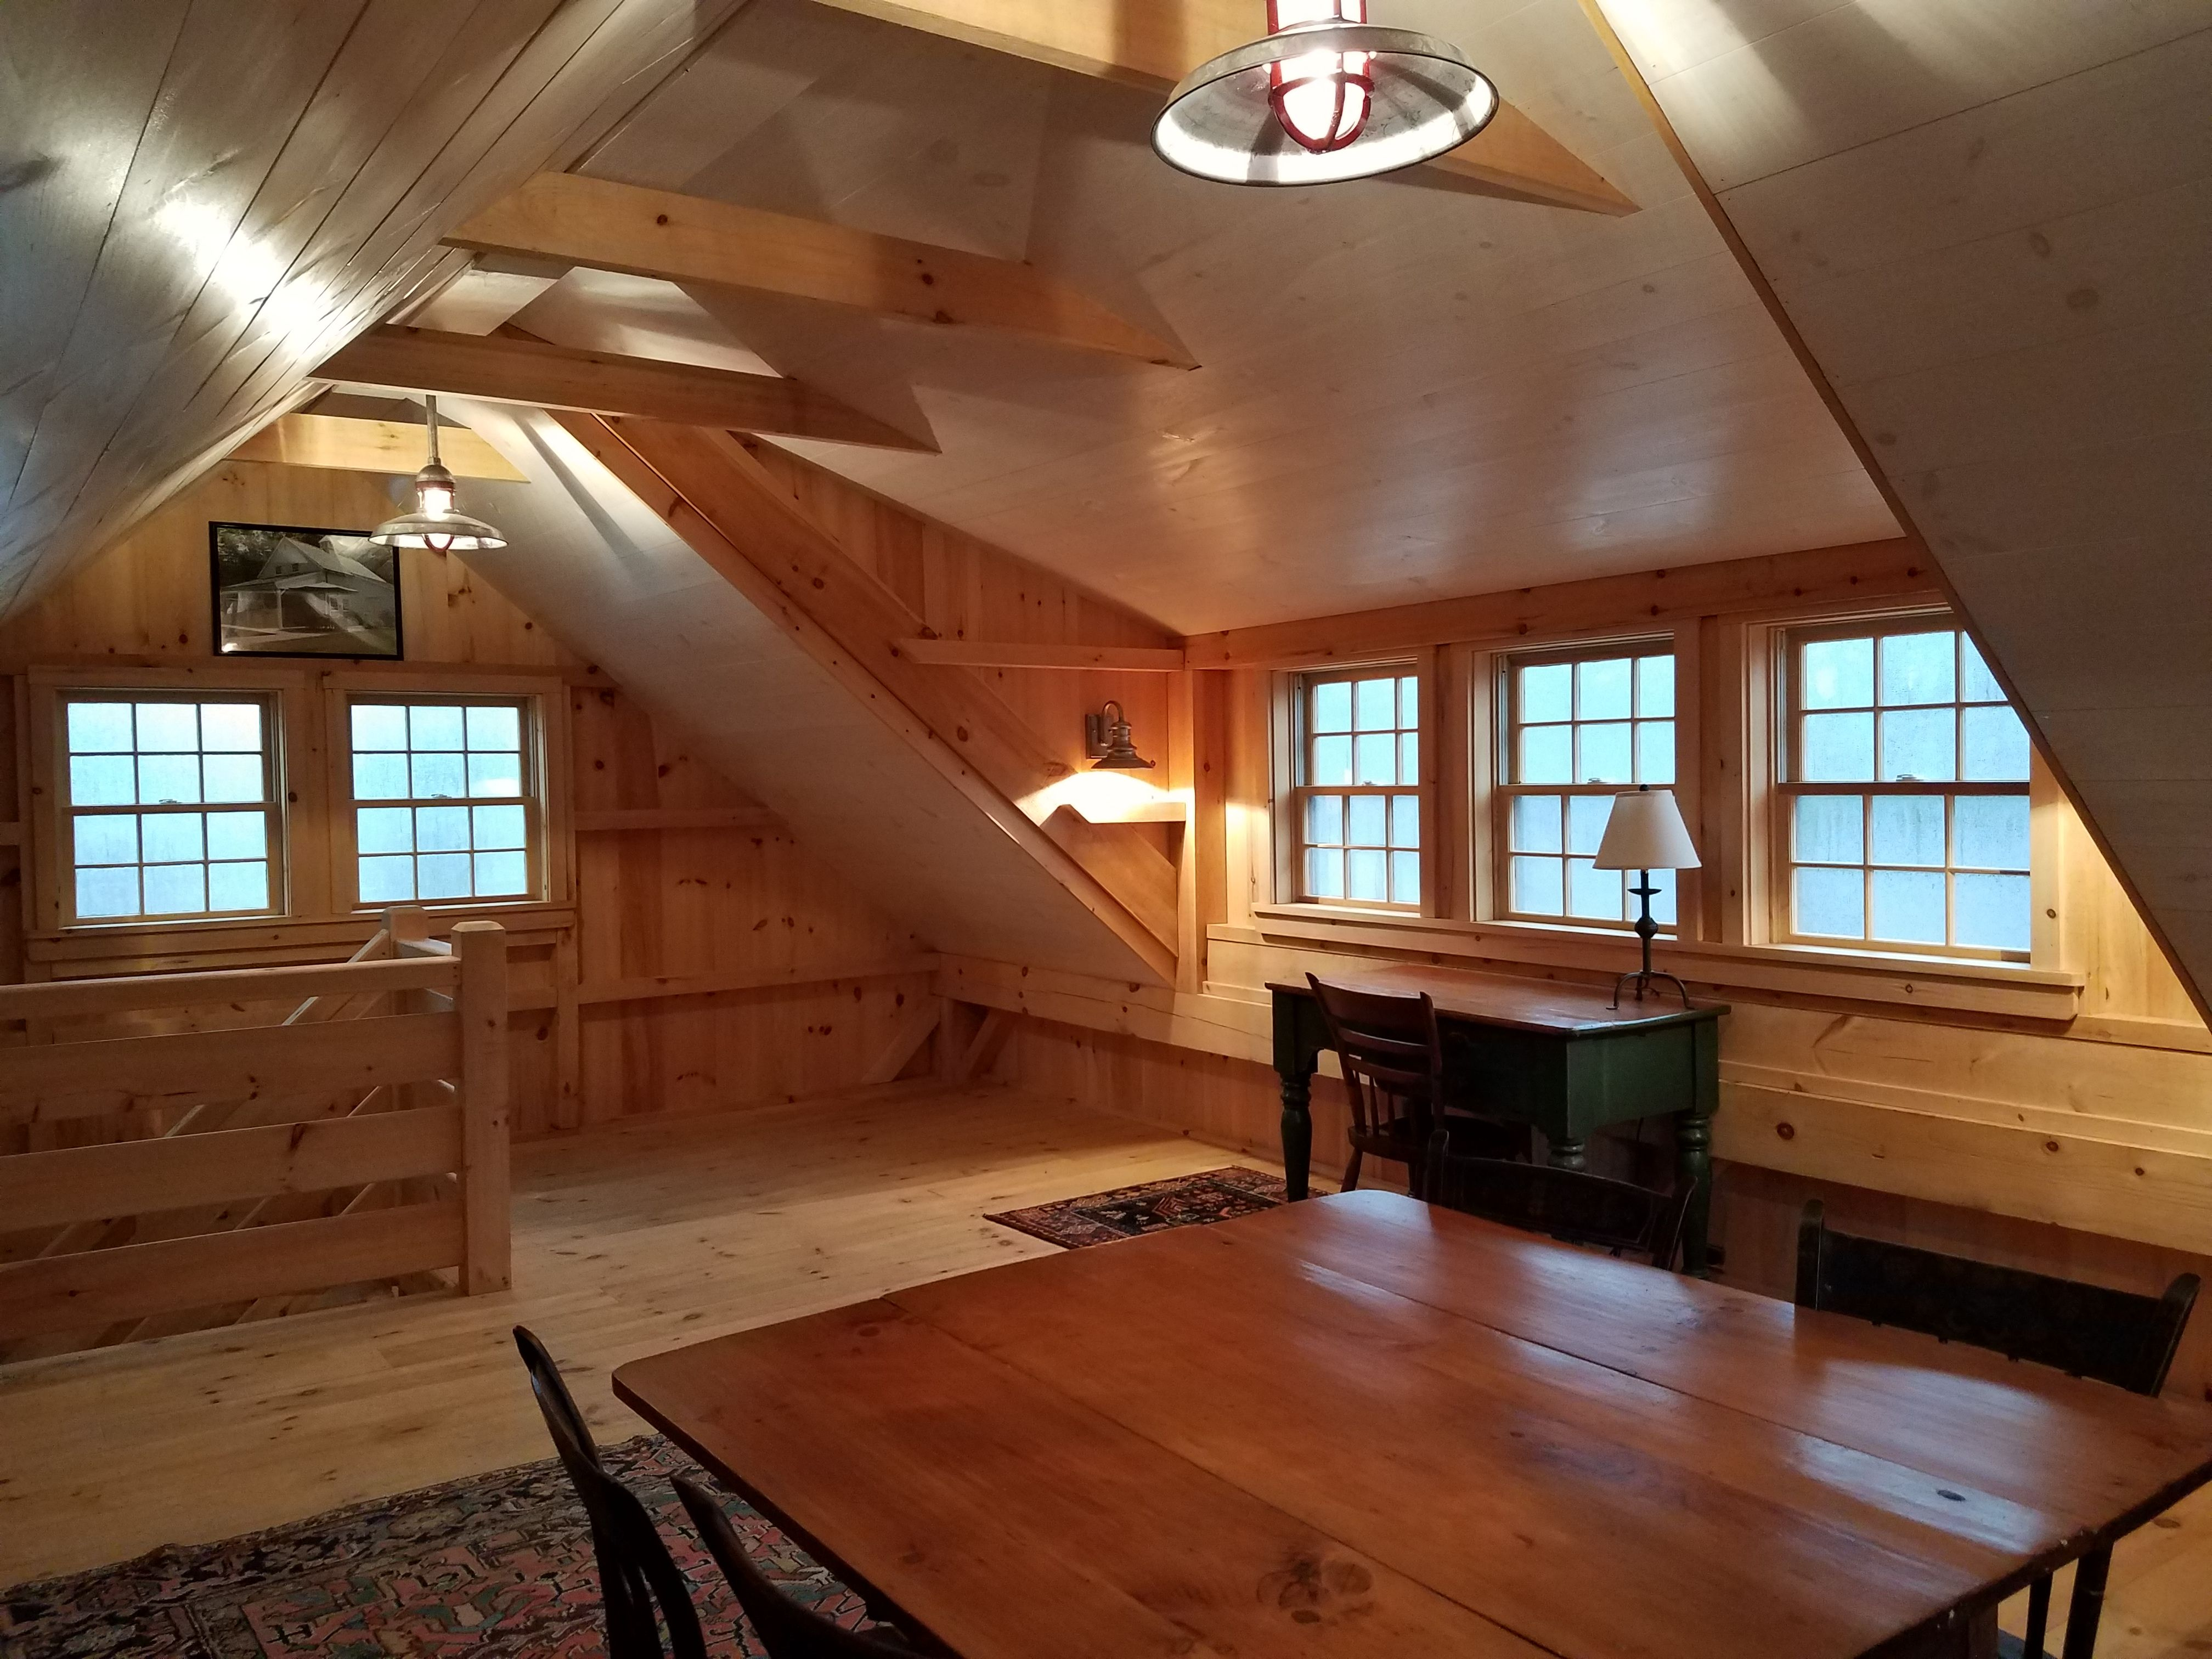 With The Shed Dormer Option Even Our Smallest 1 1 2 Story Barn Has Loft Space With Endless Possibilities Www Countrycar Shed Dormer Room Above Garage Dormers